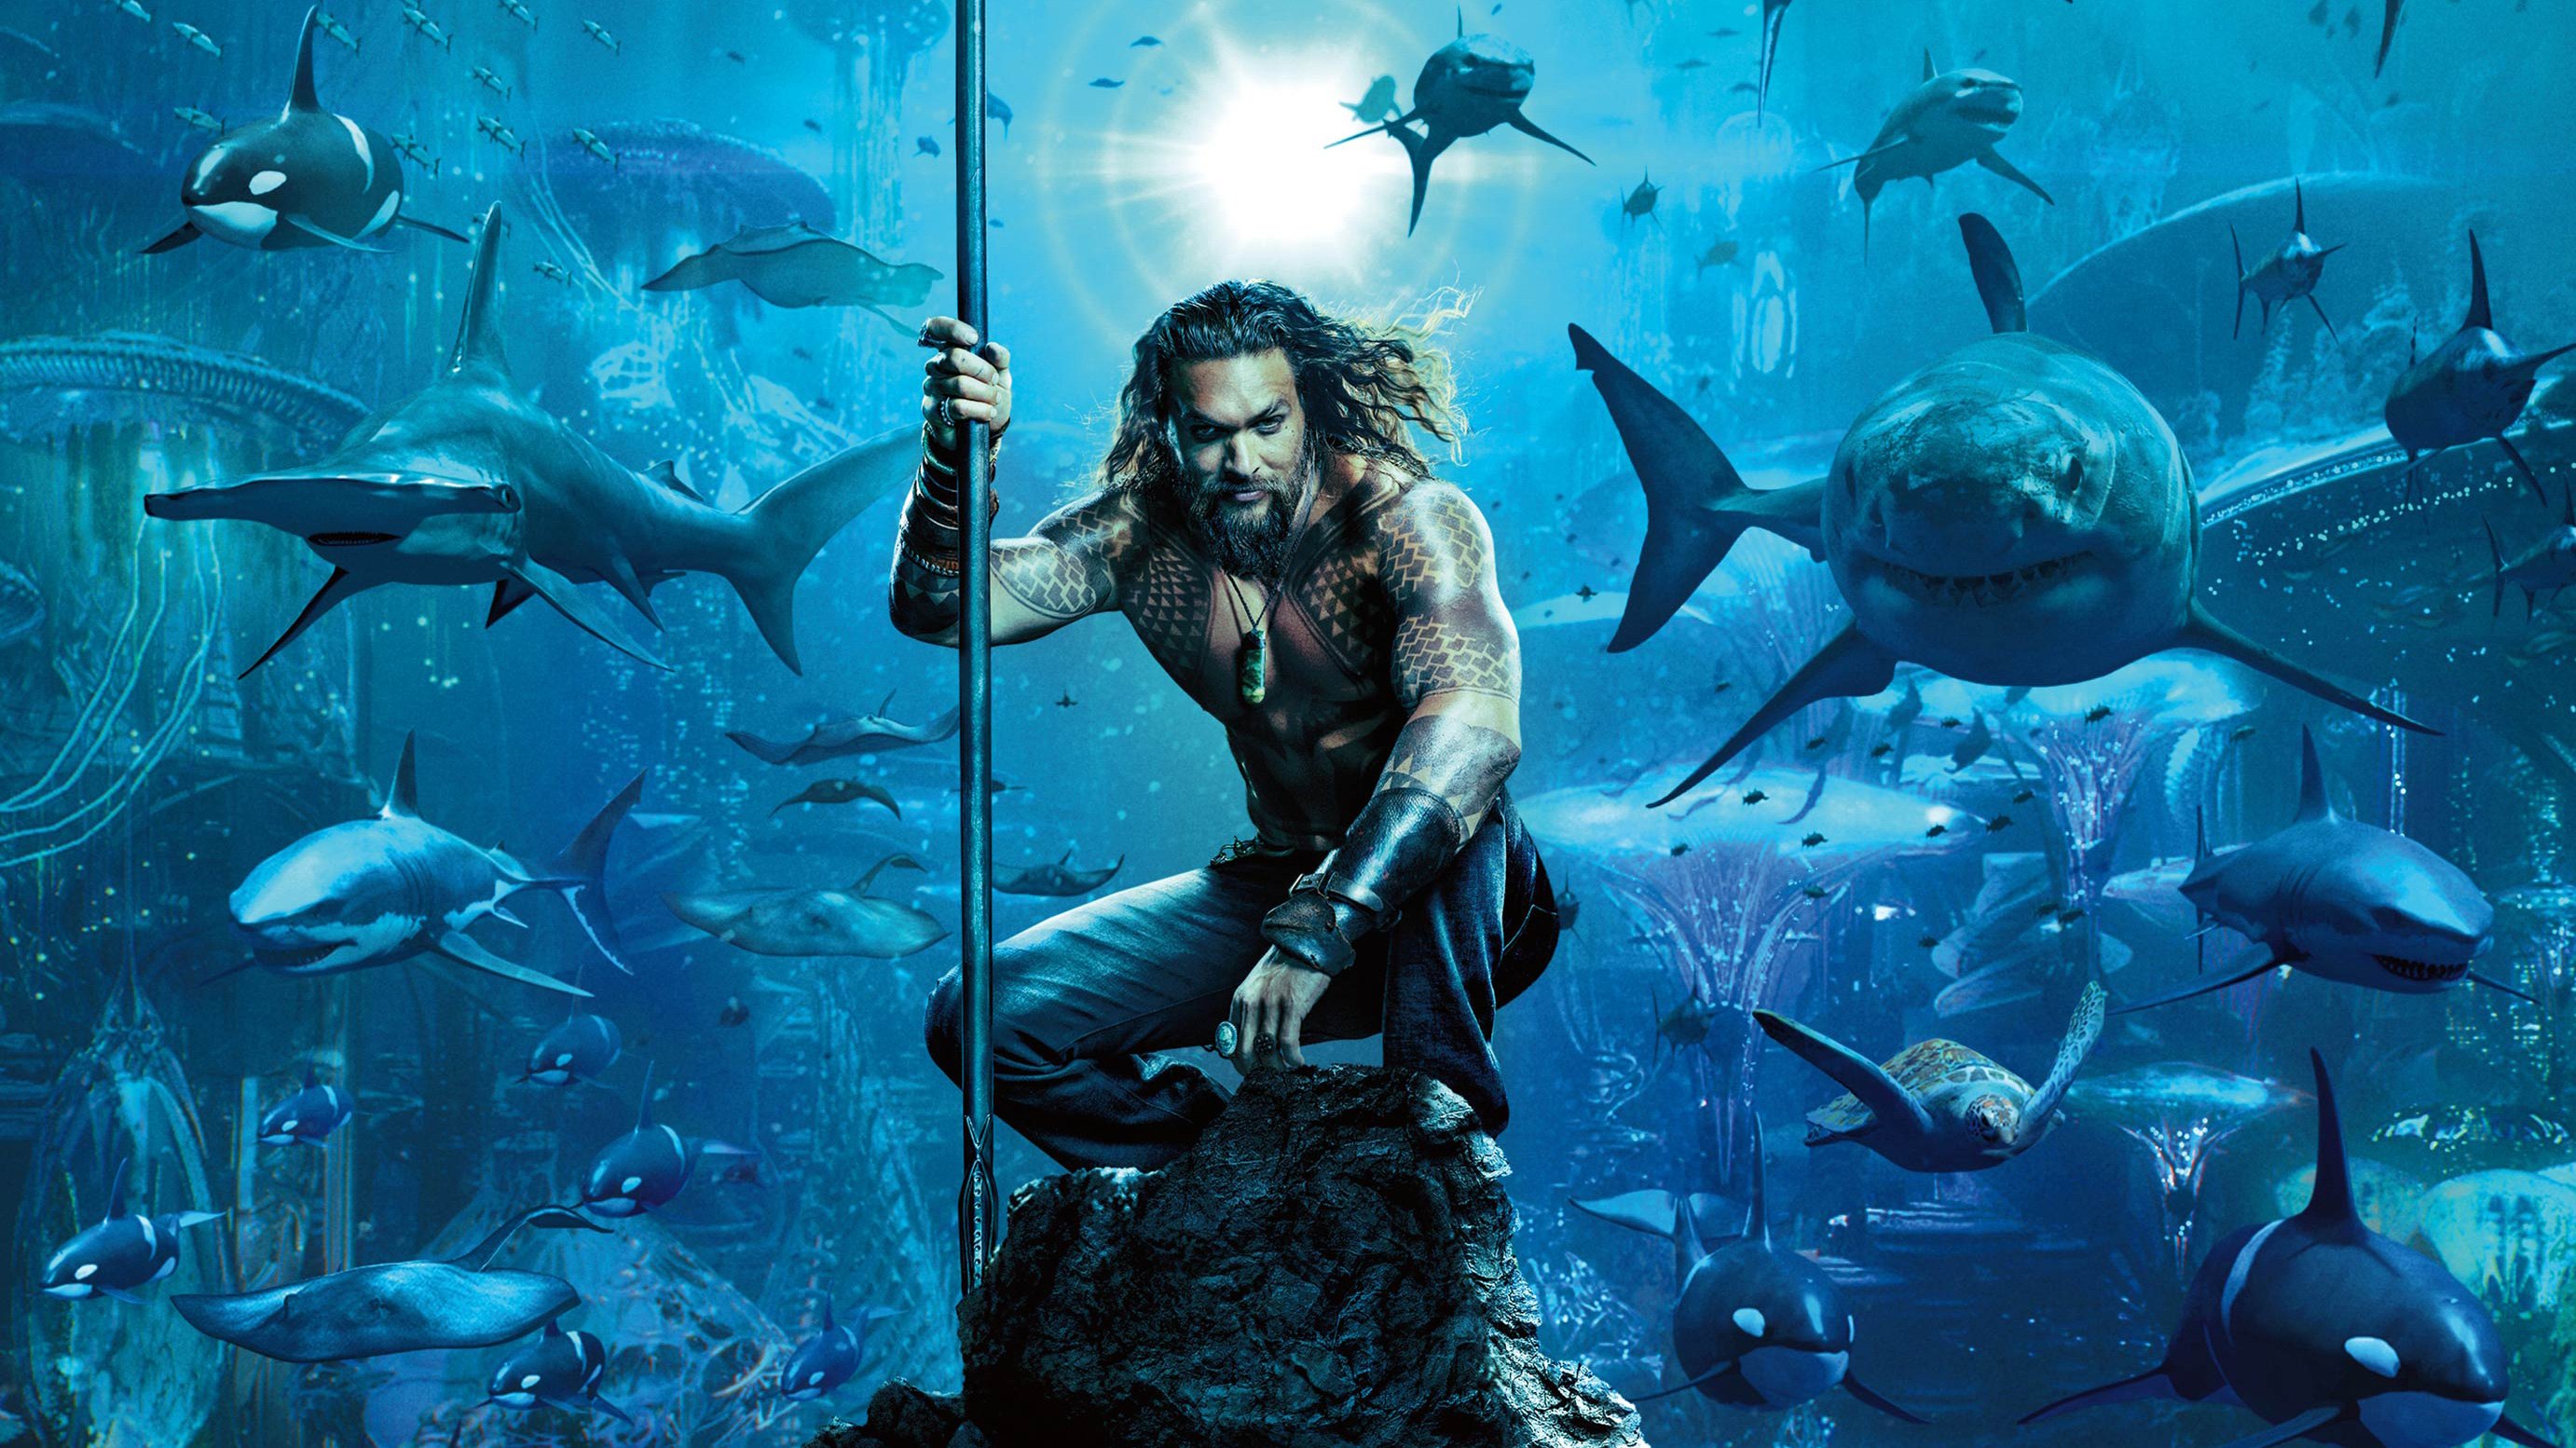 aqua man movie jason momoa poster dc comics pc hd wallpaper